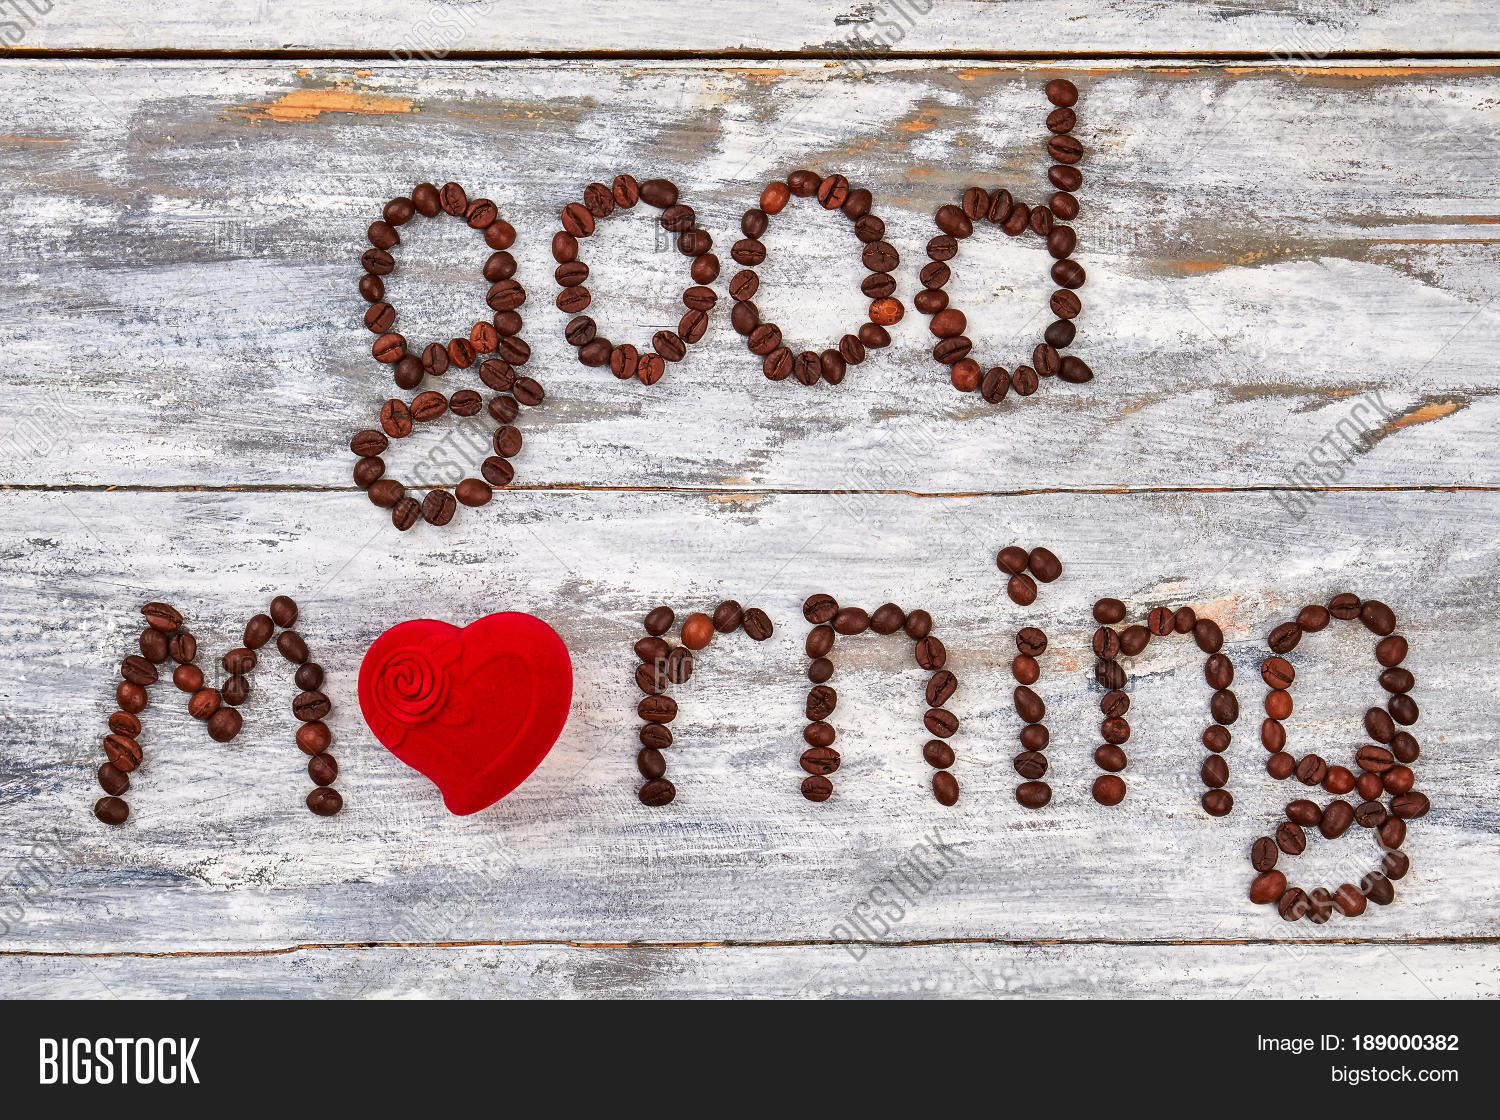 Good Morning Heart Image Photo Free Trial Bigstock